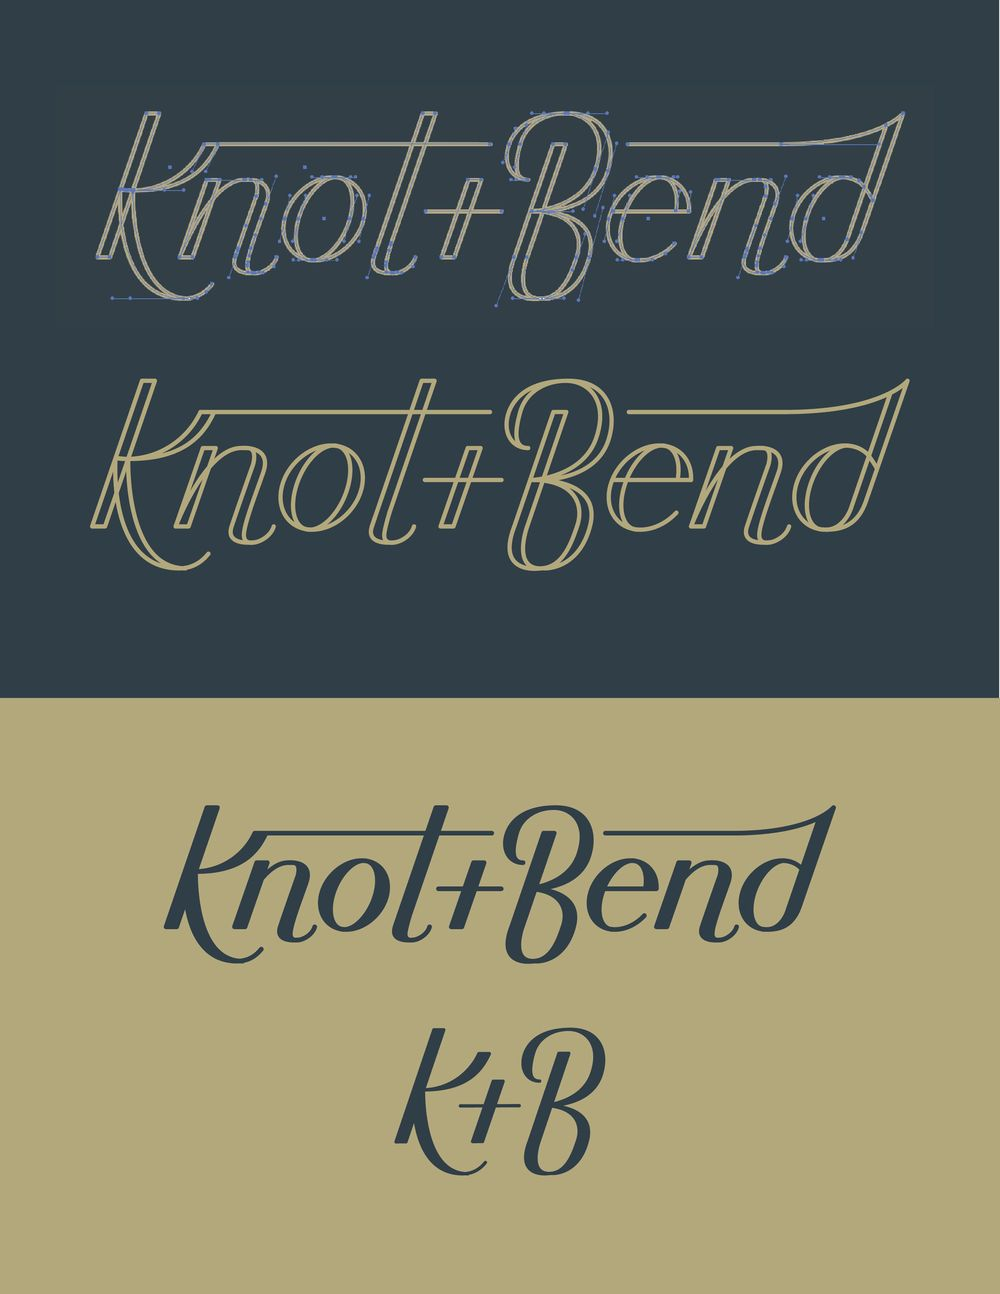 Knot+Bend - image 6 - student project